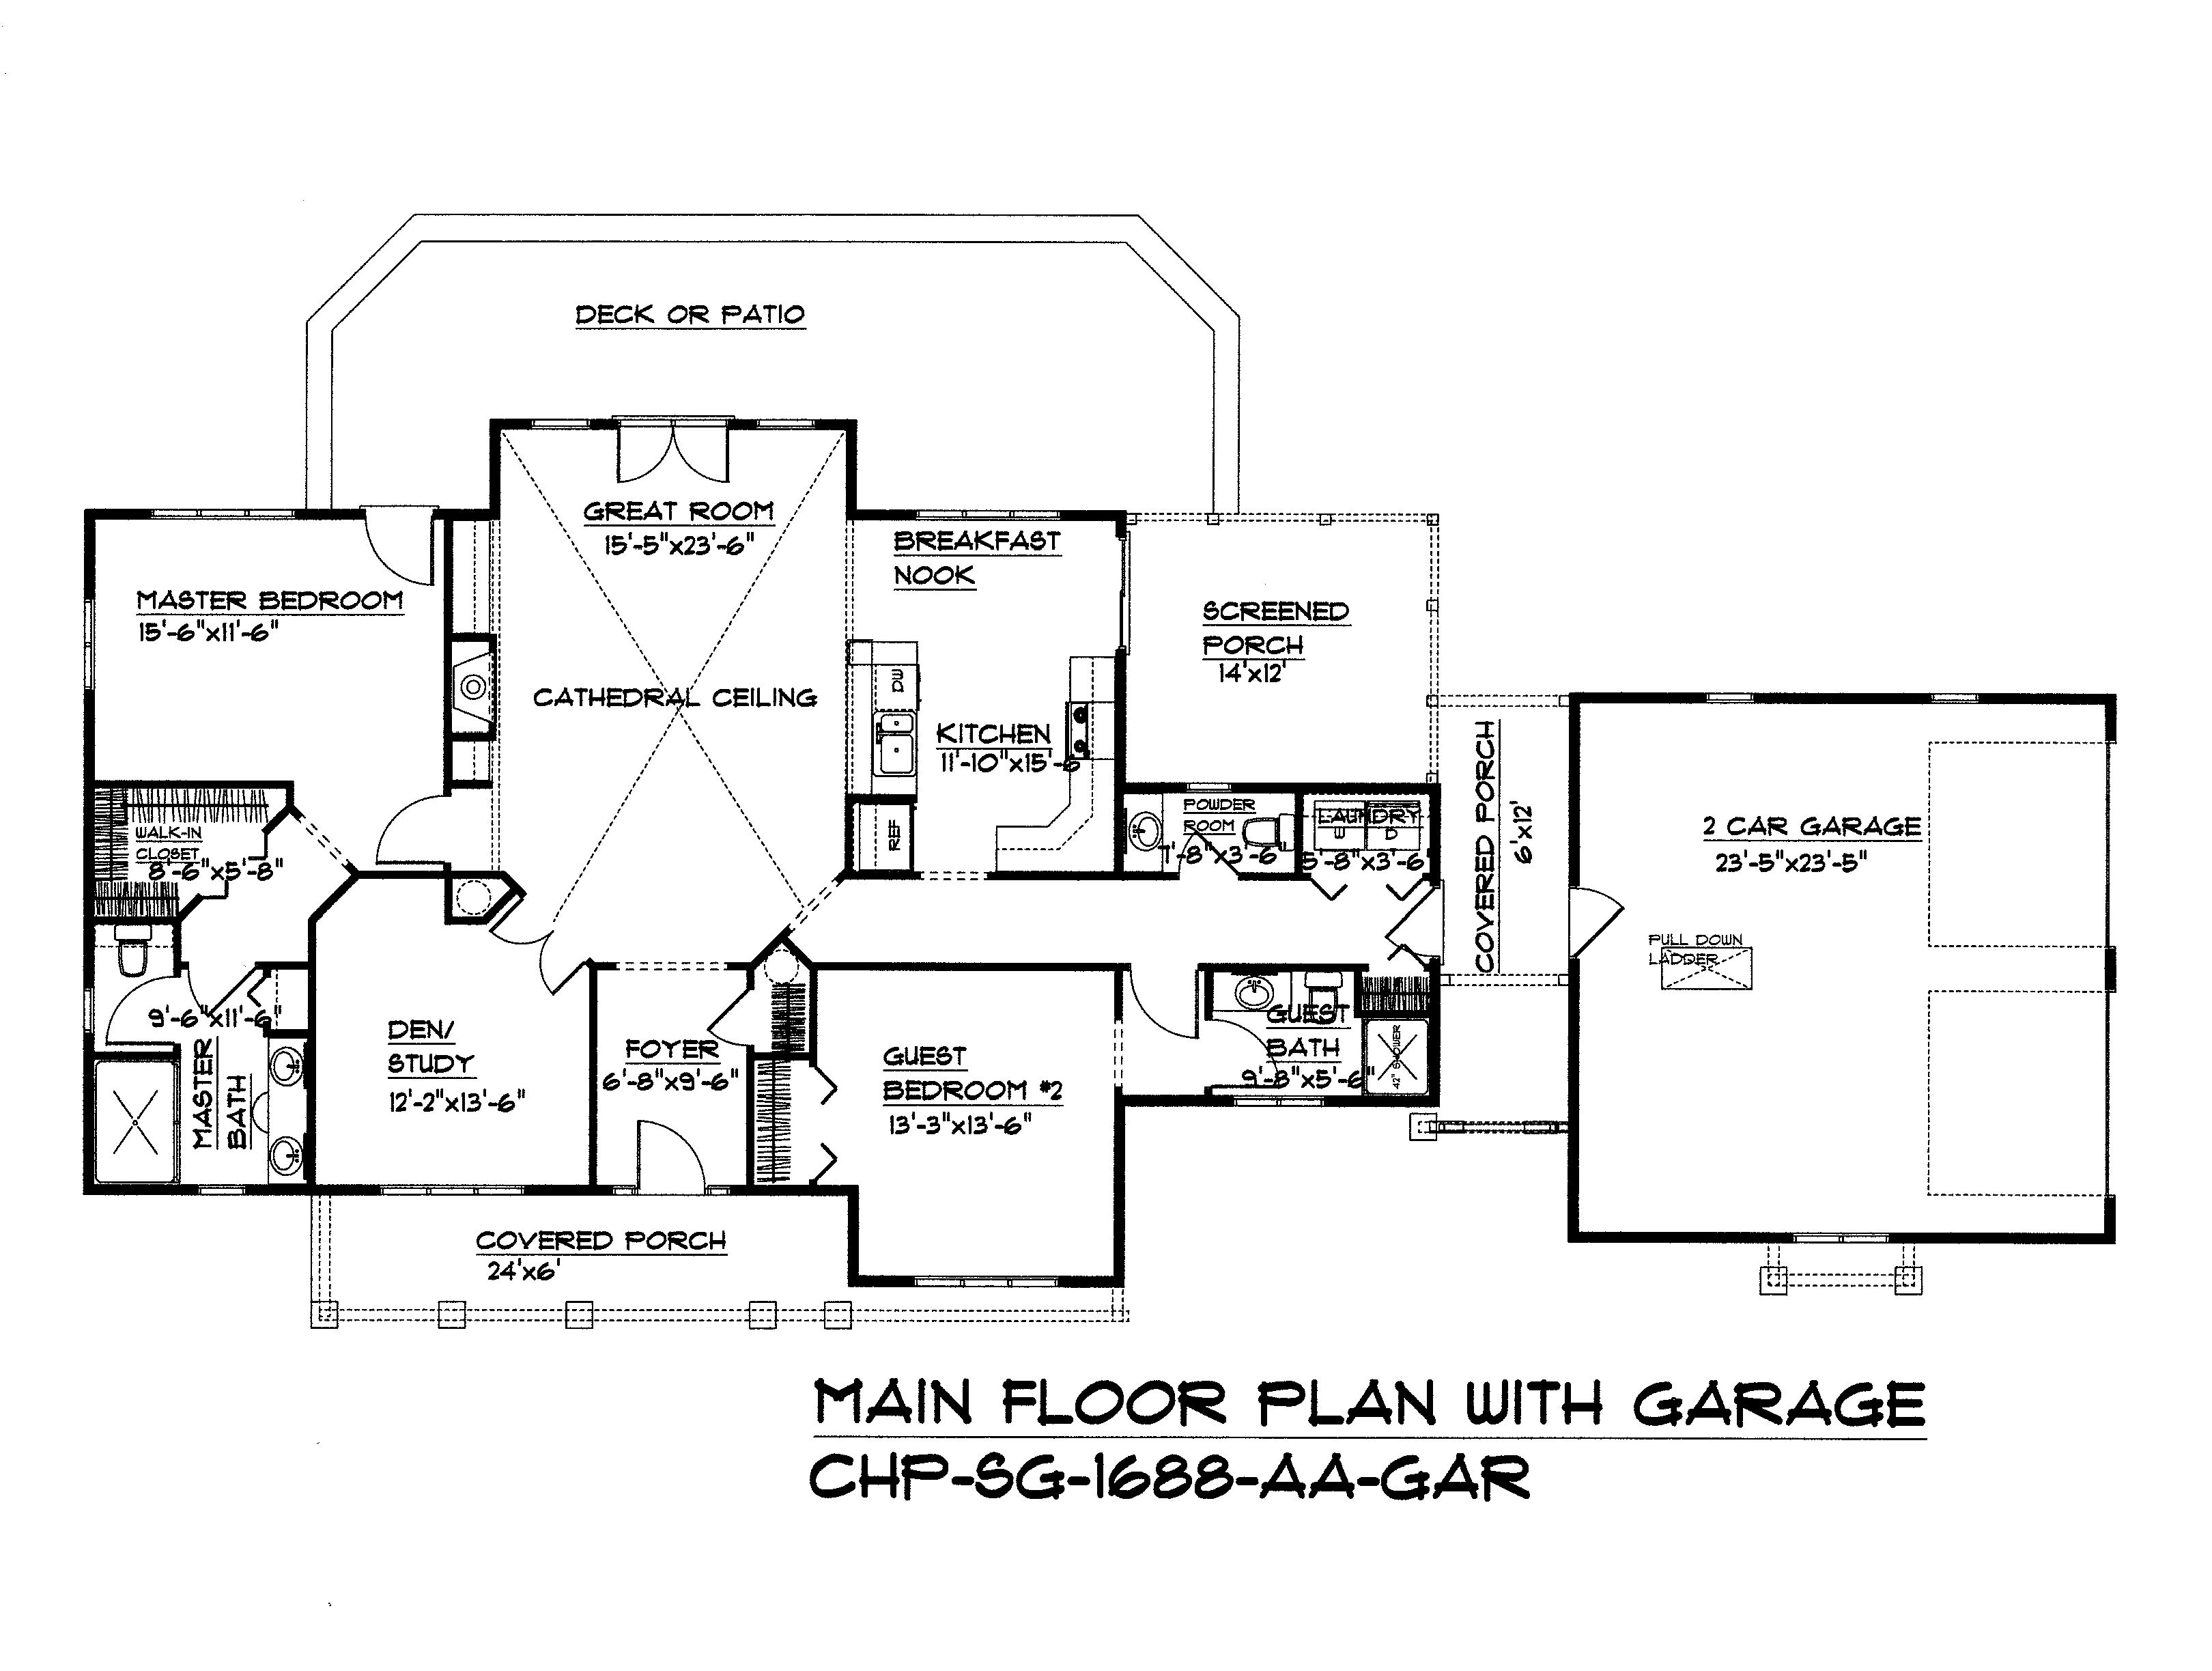 Split Bedroom Dual Master Suite Floor Plan Sg 1688 Aa By Carolina Home Plans Master Suite Floor Plan Garage House Plans Cabin House Plans